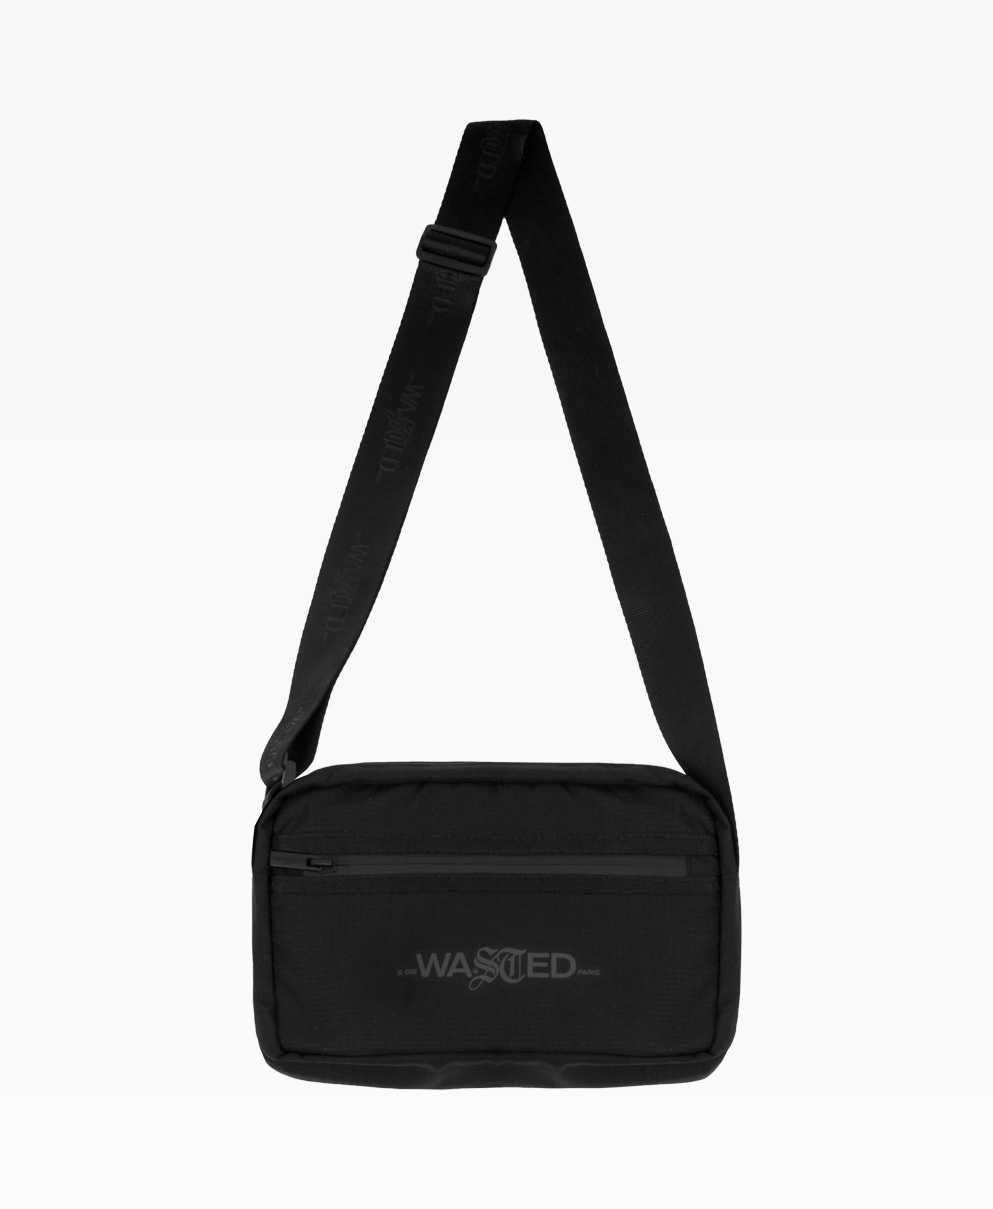 Wasted Messenger Bag Black Front